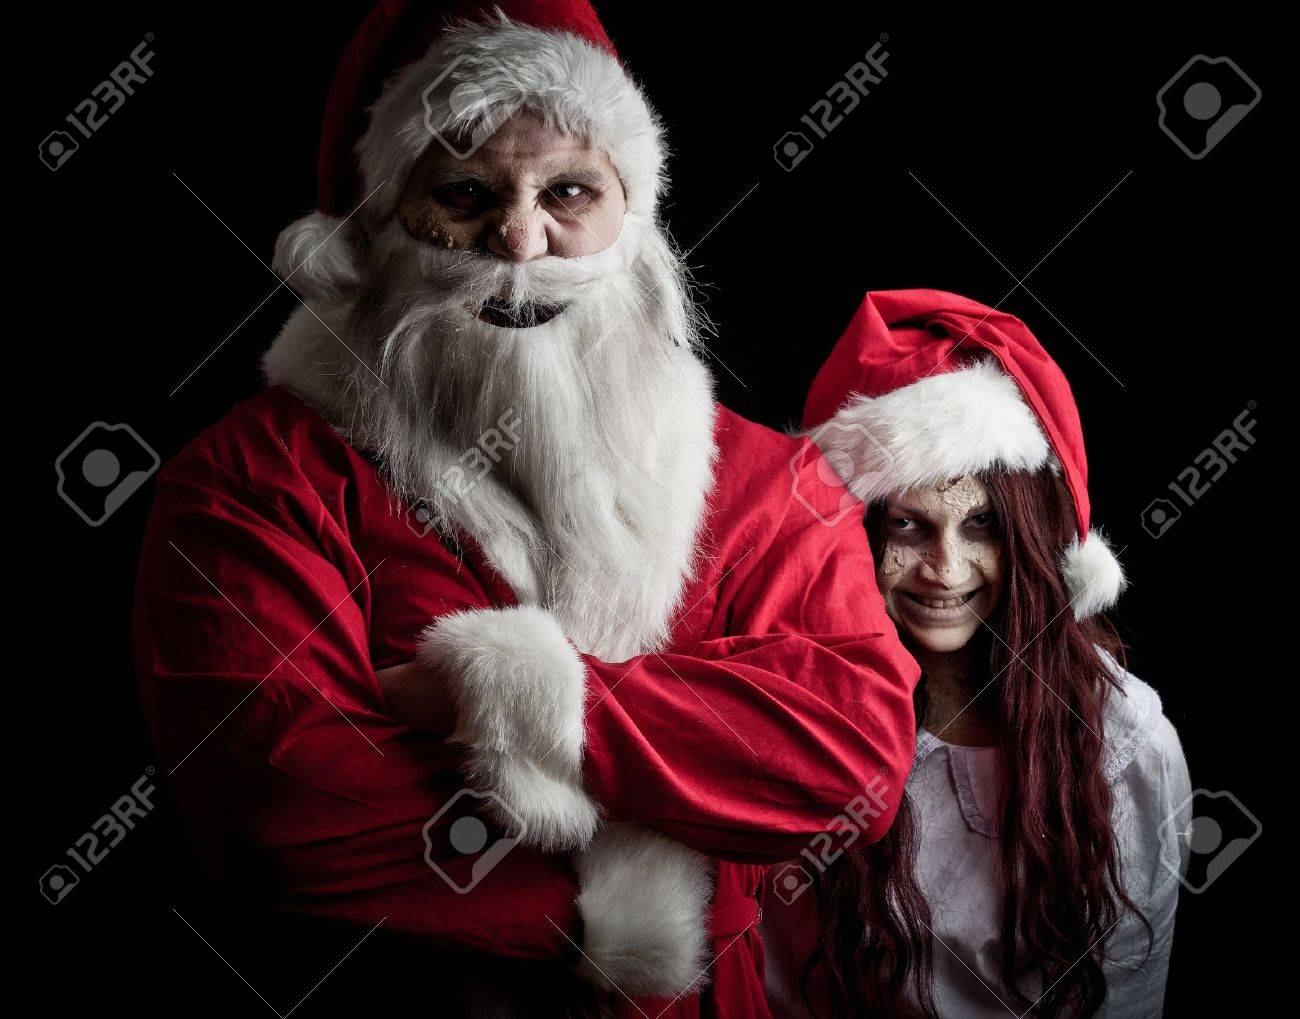 portrait of a scary looking santa claus and an elf stock photo